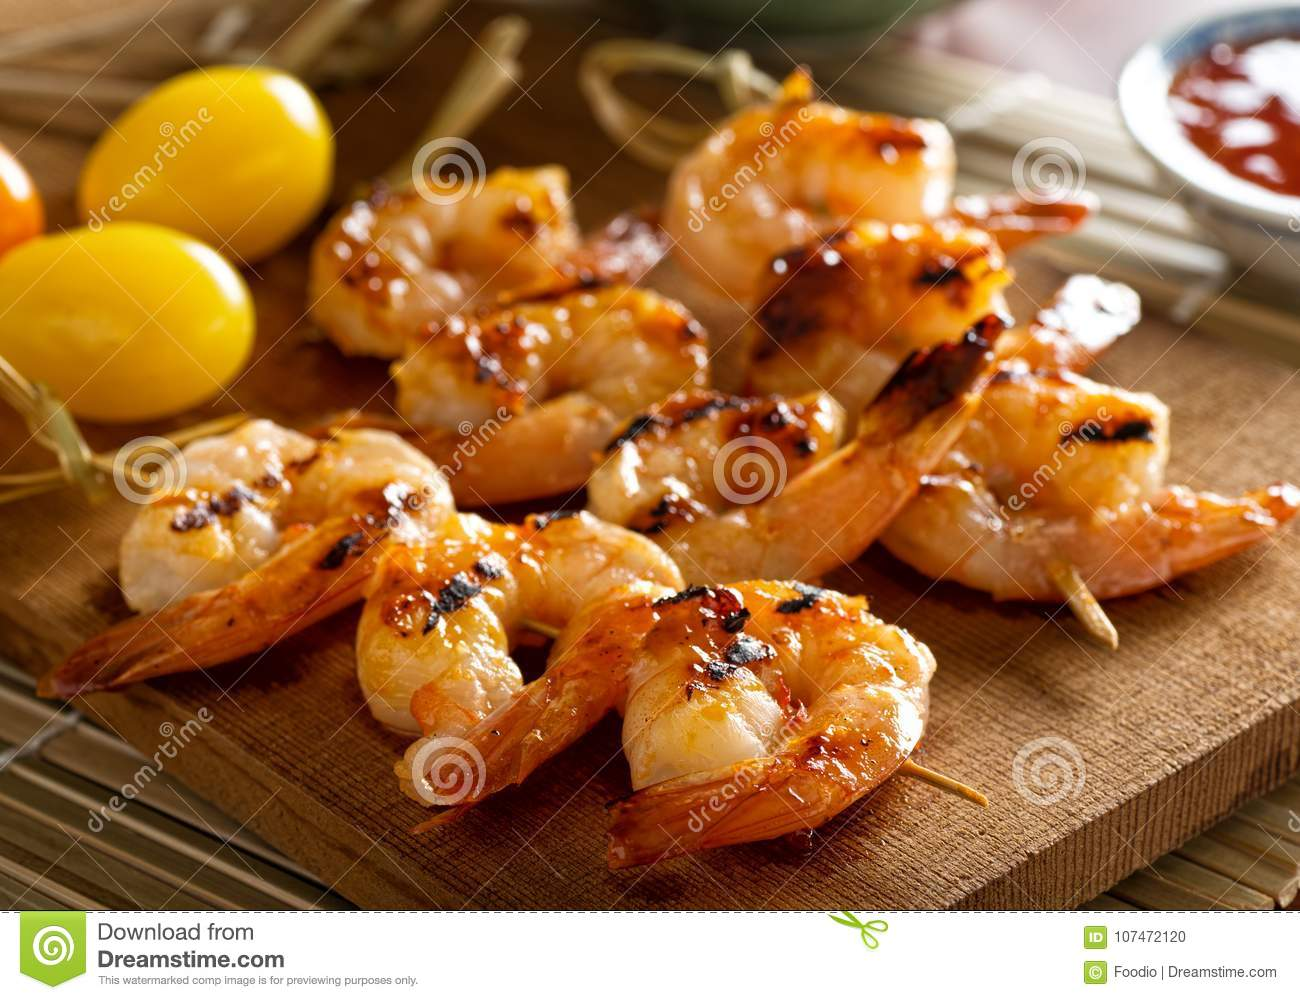 Grilled Sweet and Spicy Shrimp Skewers